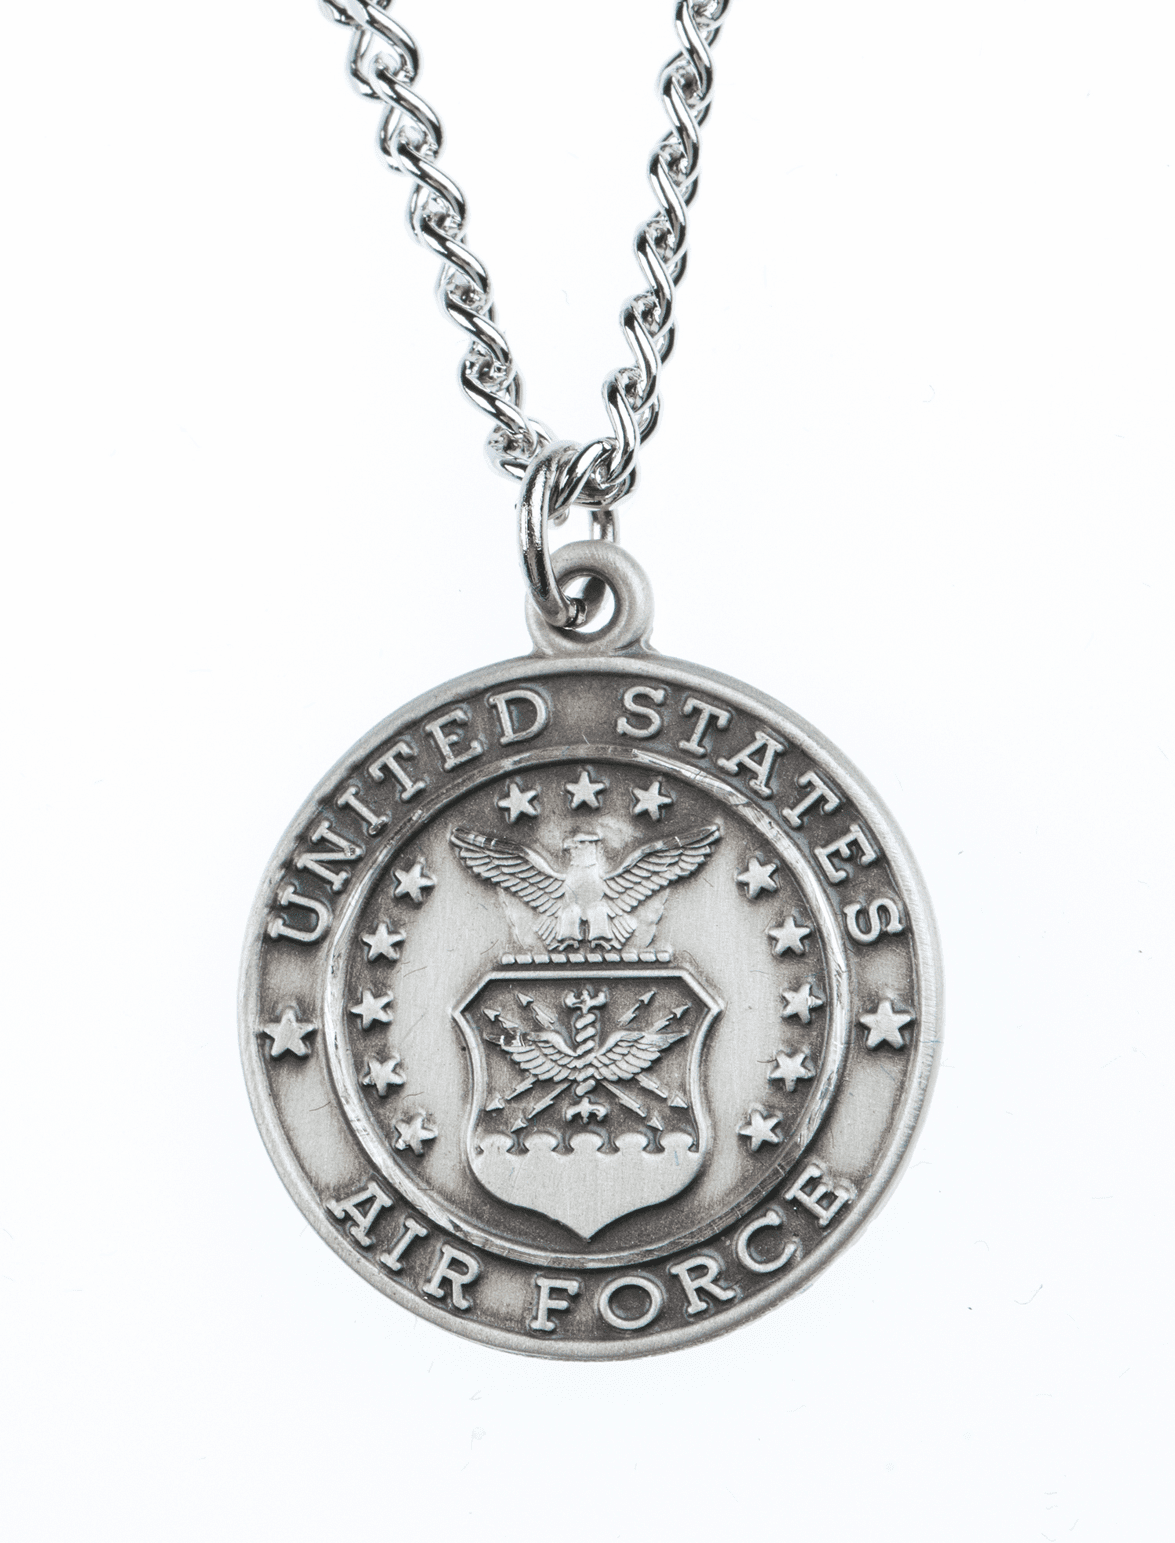 Jeweled Cross Sterling Silver Air Force St. Christopher Medal